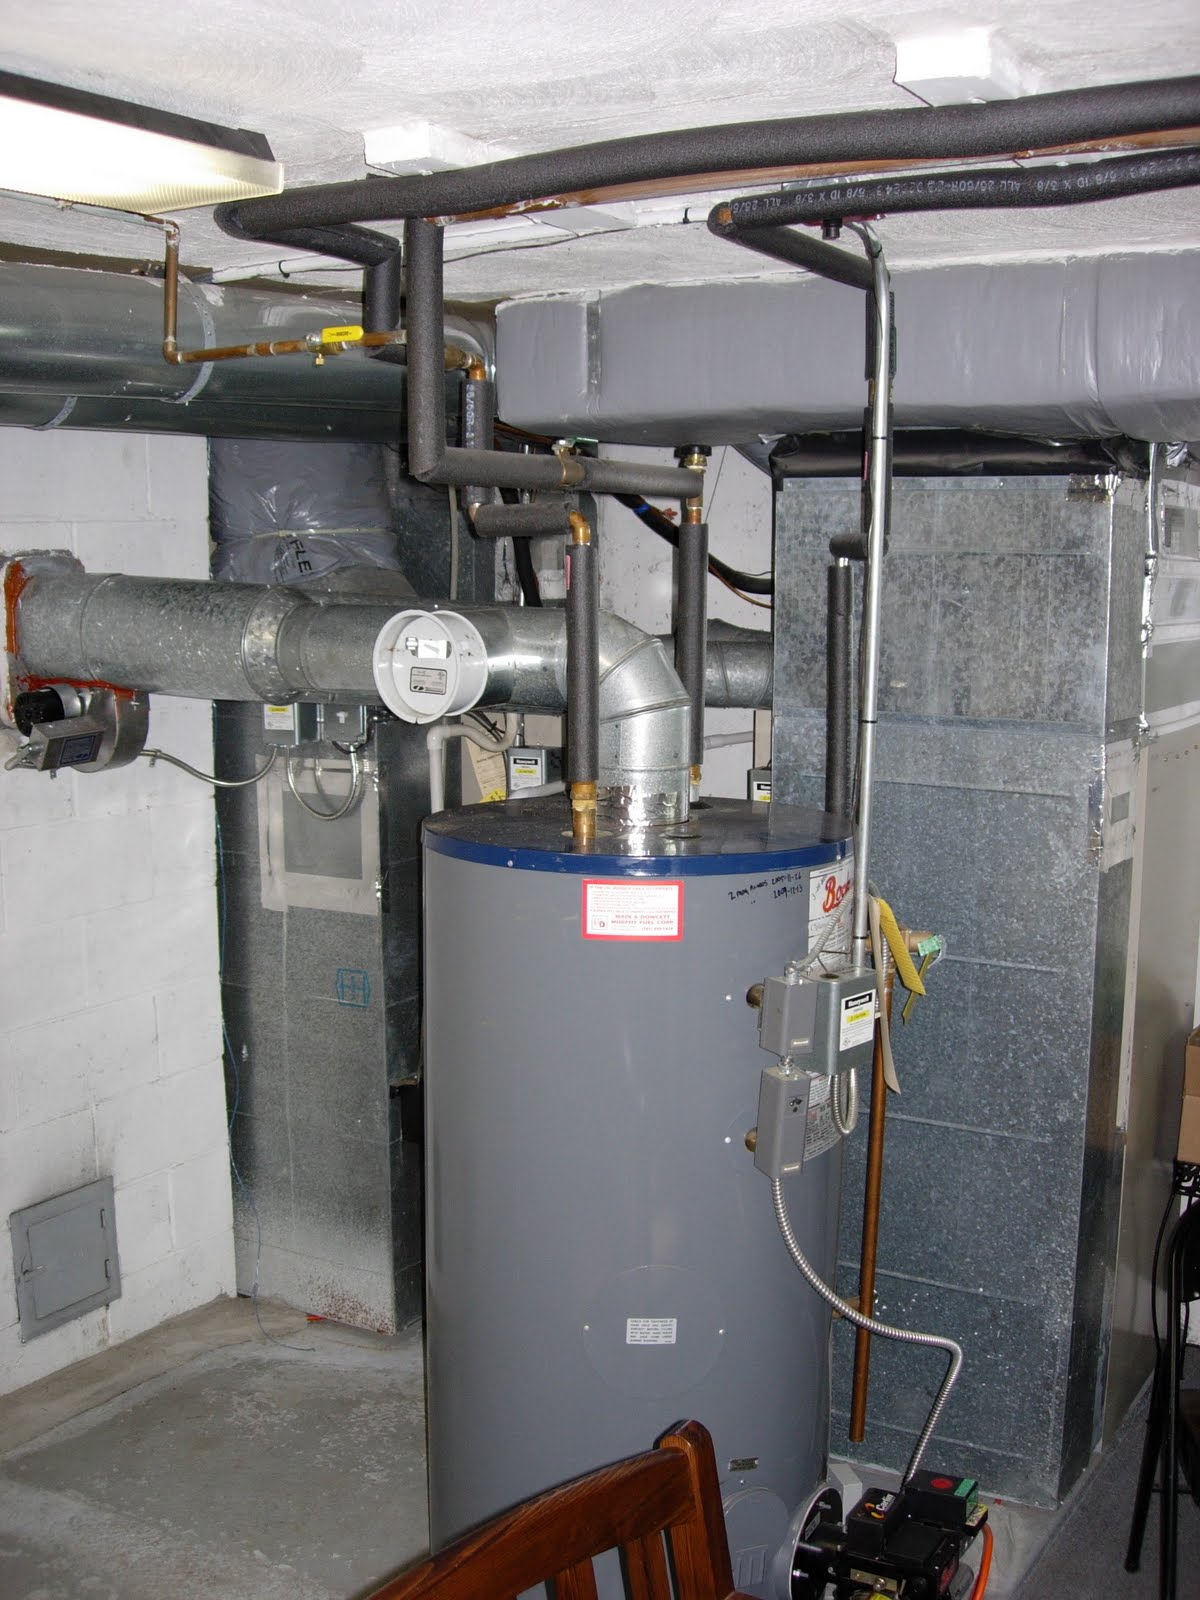 Forced hot air oil furnace keeps cycling